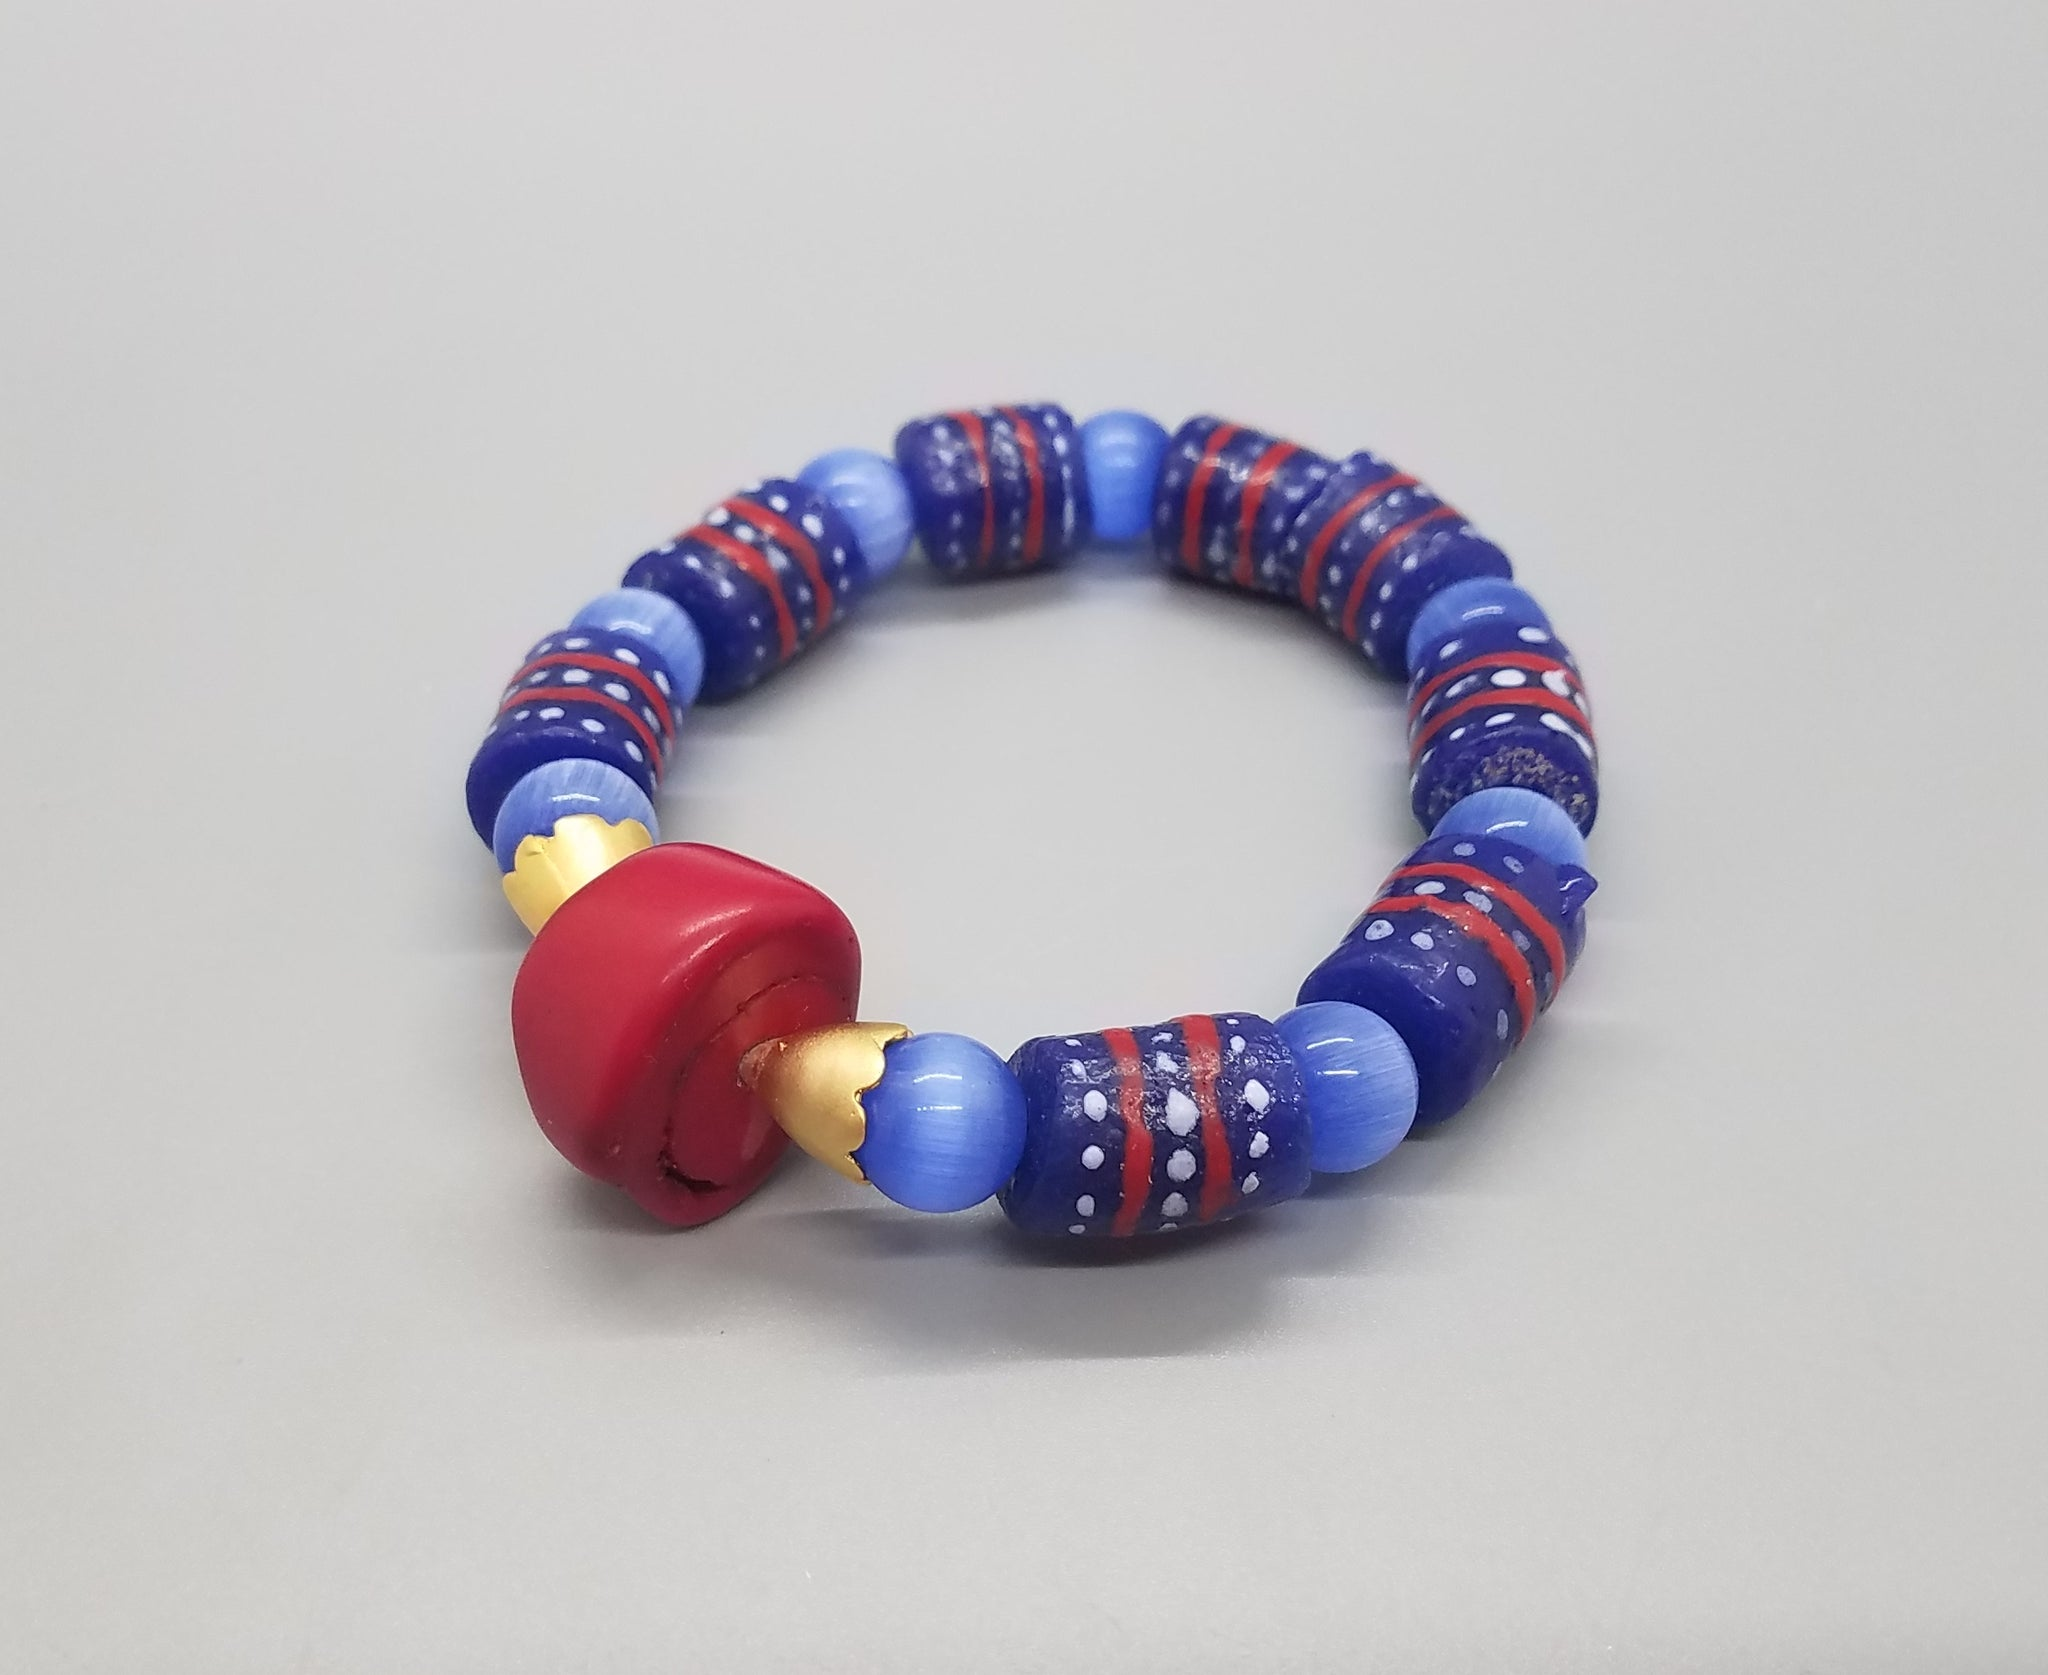 Red Blue Muti Krobo Beads, Blue Cat Eye Beads and Brass Stretch Bracelet